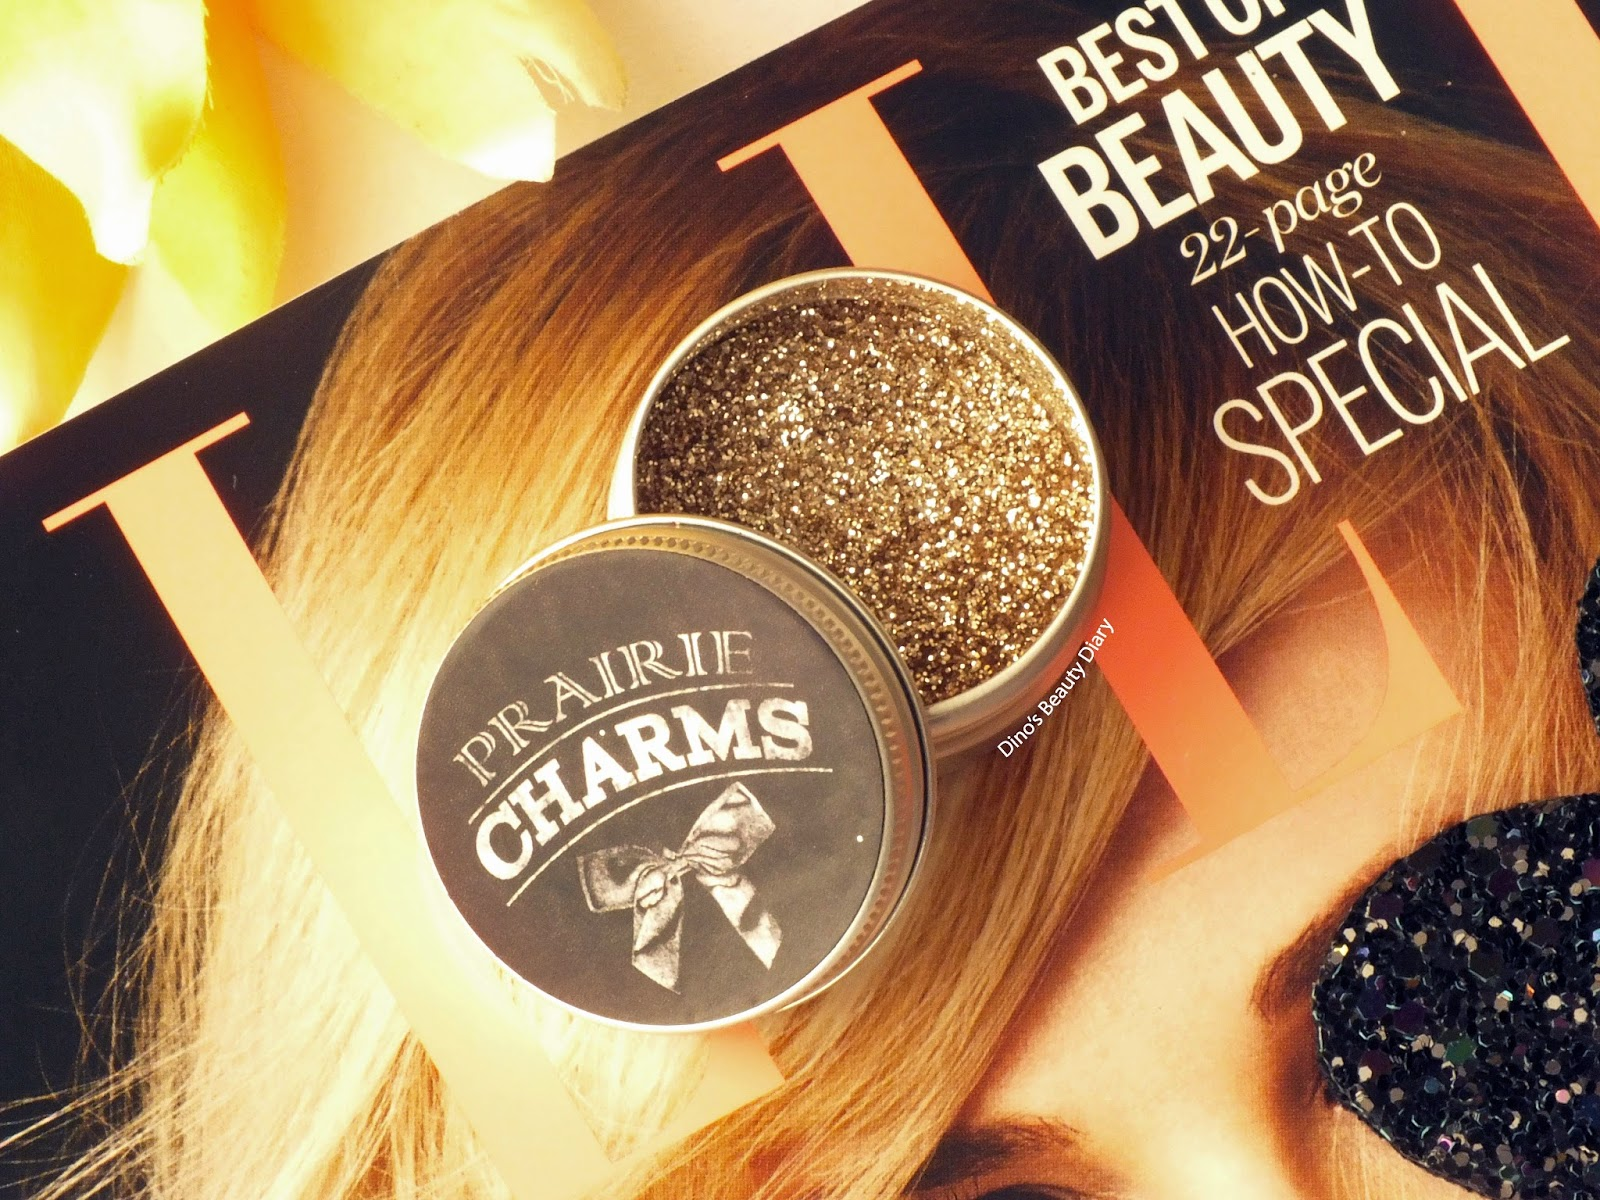 Dino's Beauty Diary - Prairie Charms Spring Mystery Bag & Exclusive Reader Offer